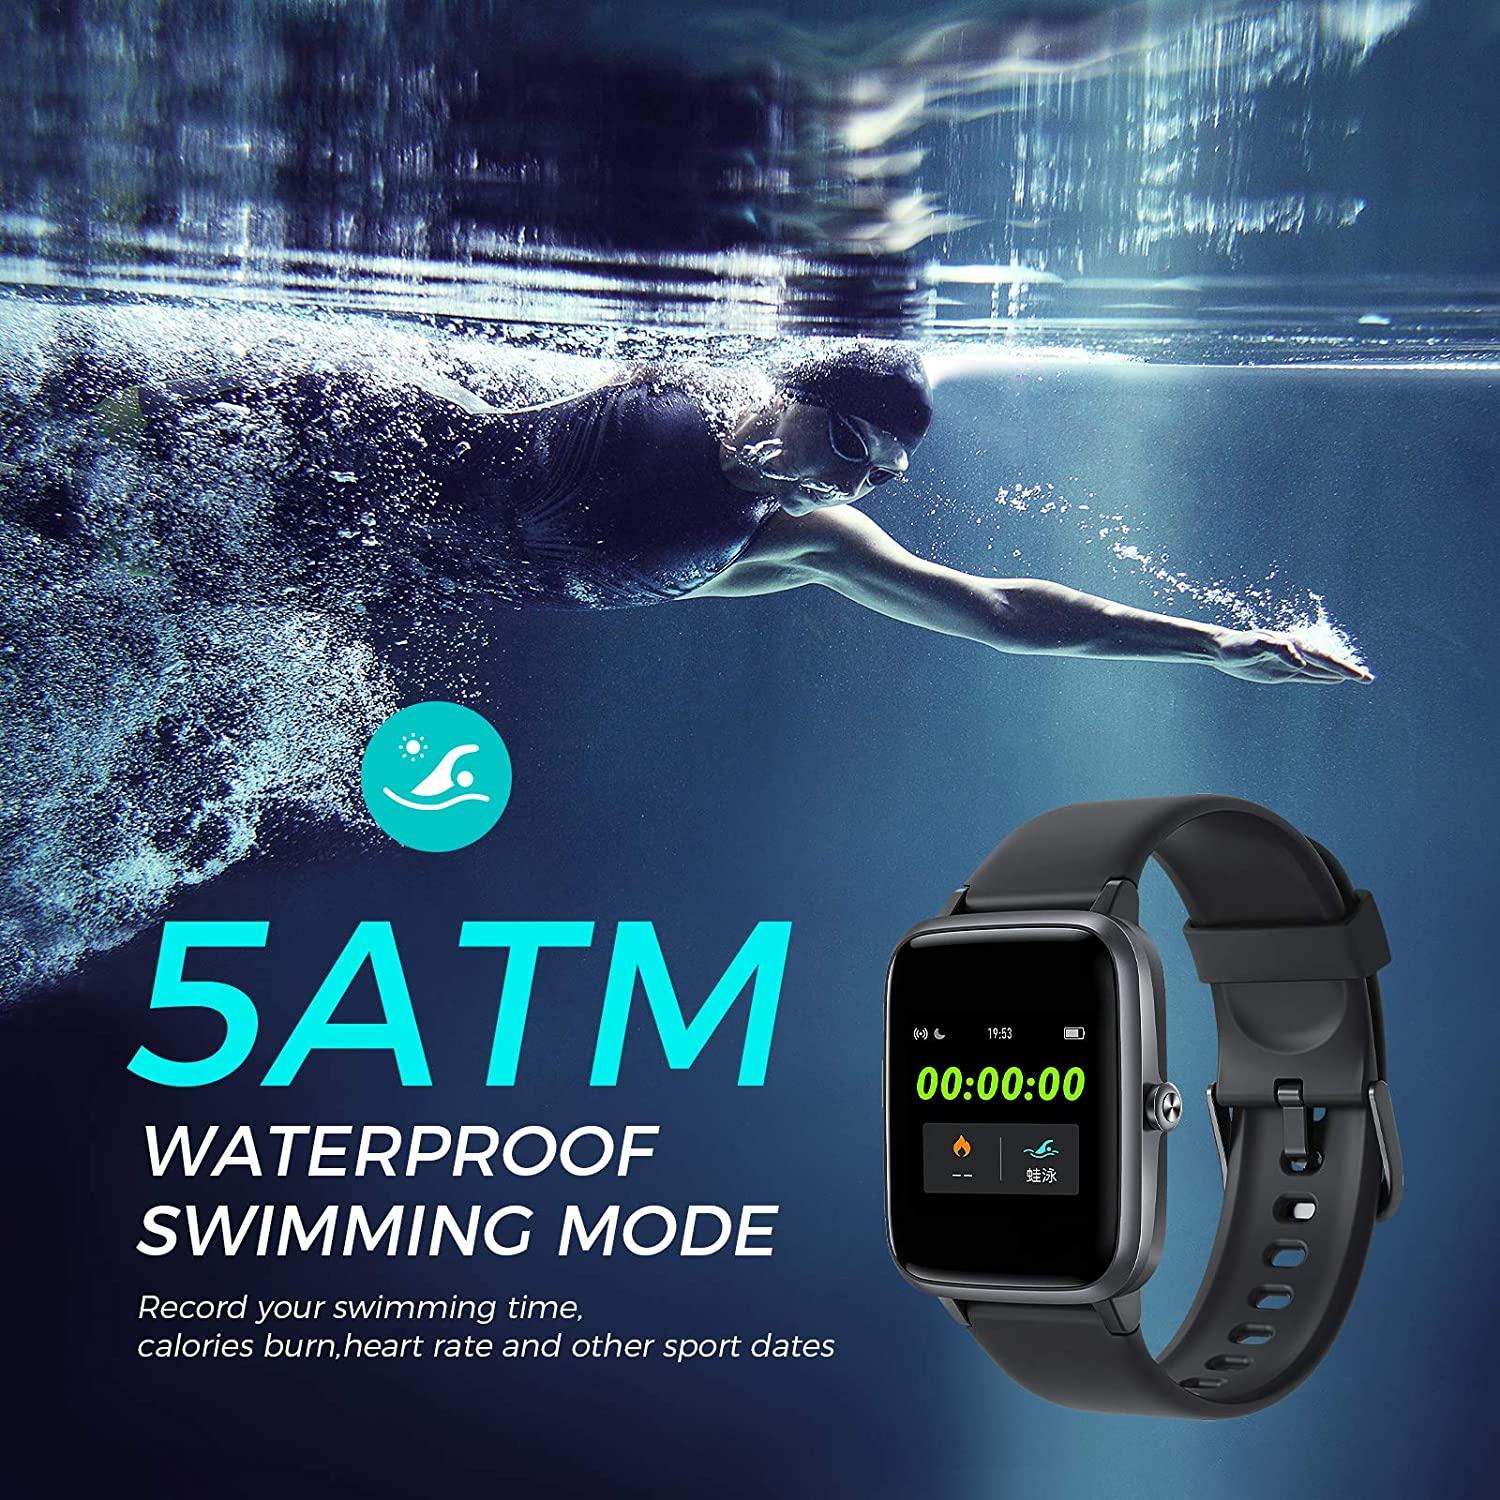 Full Touch Screen Fitness Watch,14 Sports Modes,5ATM Waterproof for Women Men Vigorun Smart Watch,Built-In GPS Fitness Tracker with All-Day Heart Rate and Activity Tracking Sleep Monitoring